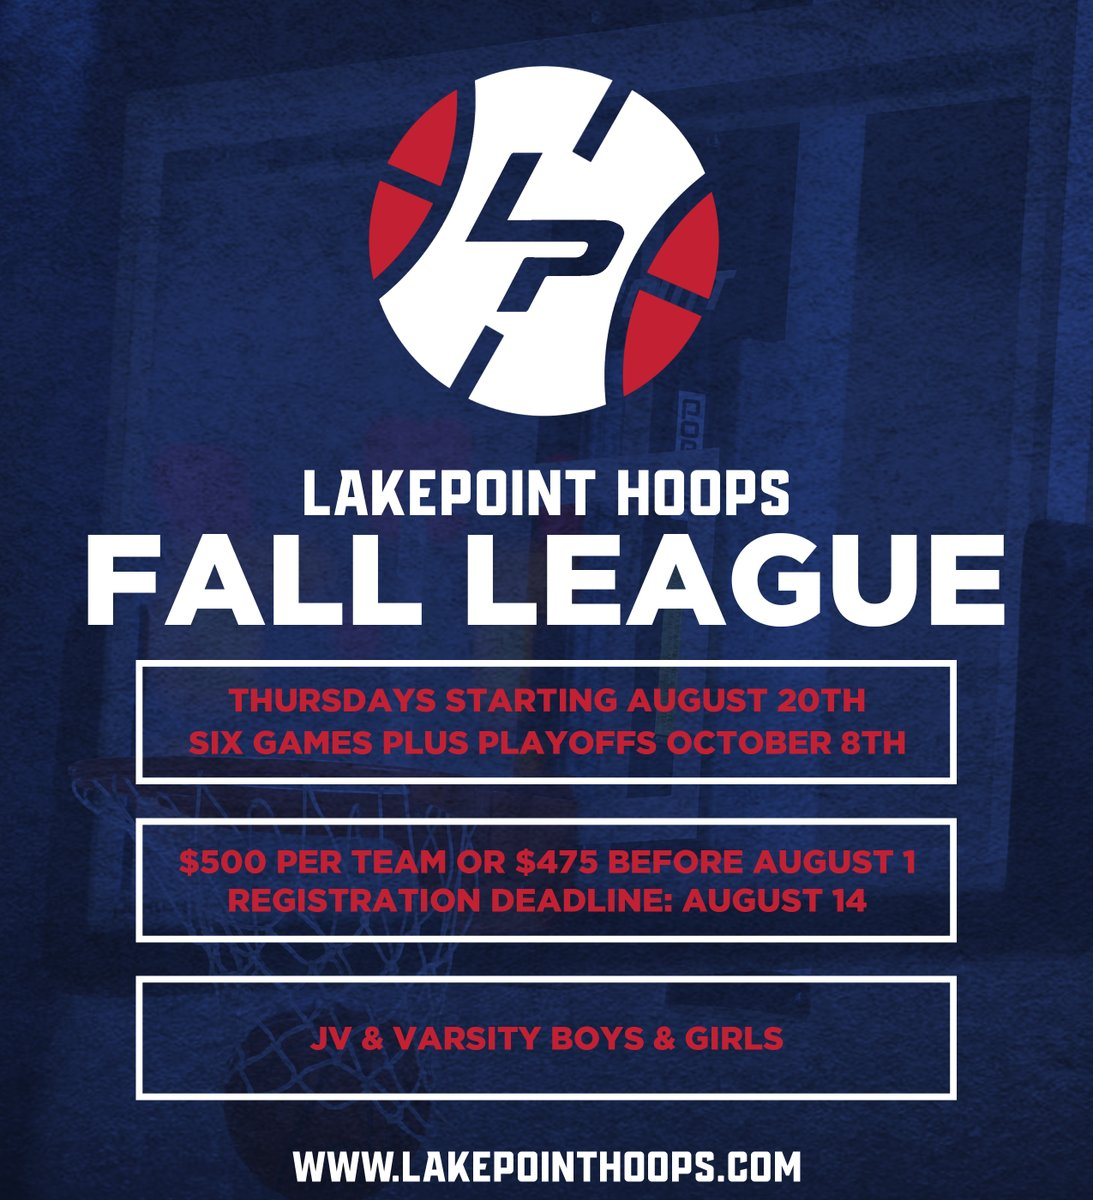 Fall leagues will be more than ever for high school teams preparing for the upcoming season. Go ahead and lock your program in for the #LakePointHoops Fall League at the @LakePointSports Champions Center. Spots are limited!  https://t.co/x2uZX0WNlb https://t.co/sDxPMqPnq2